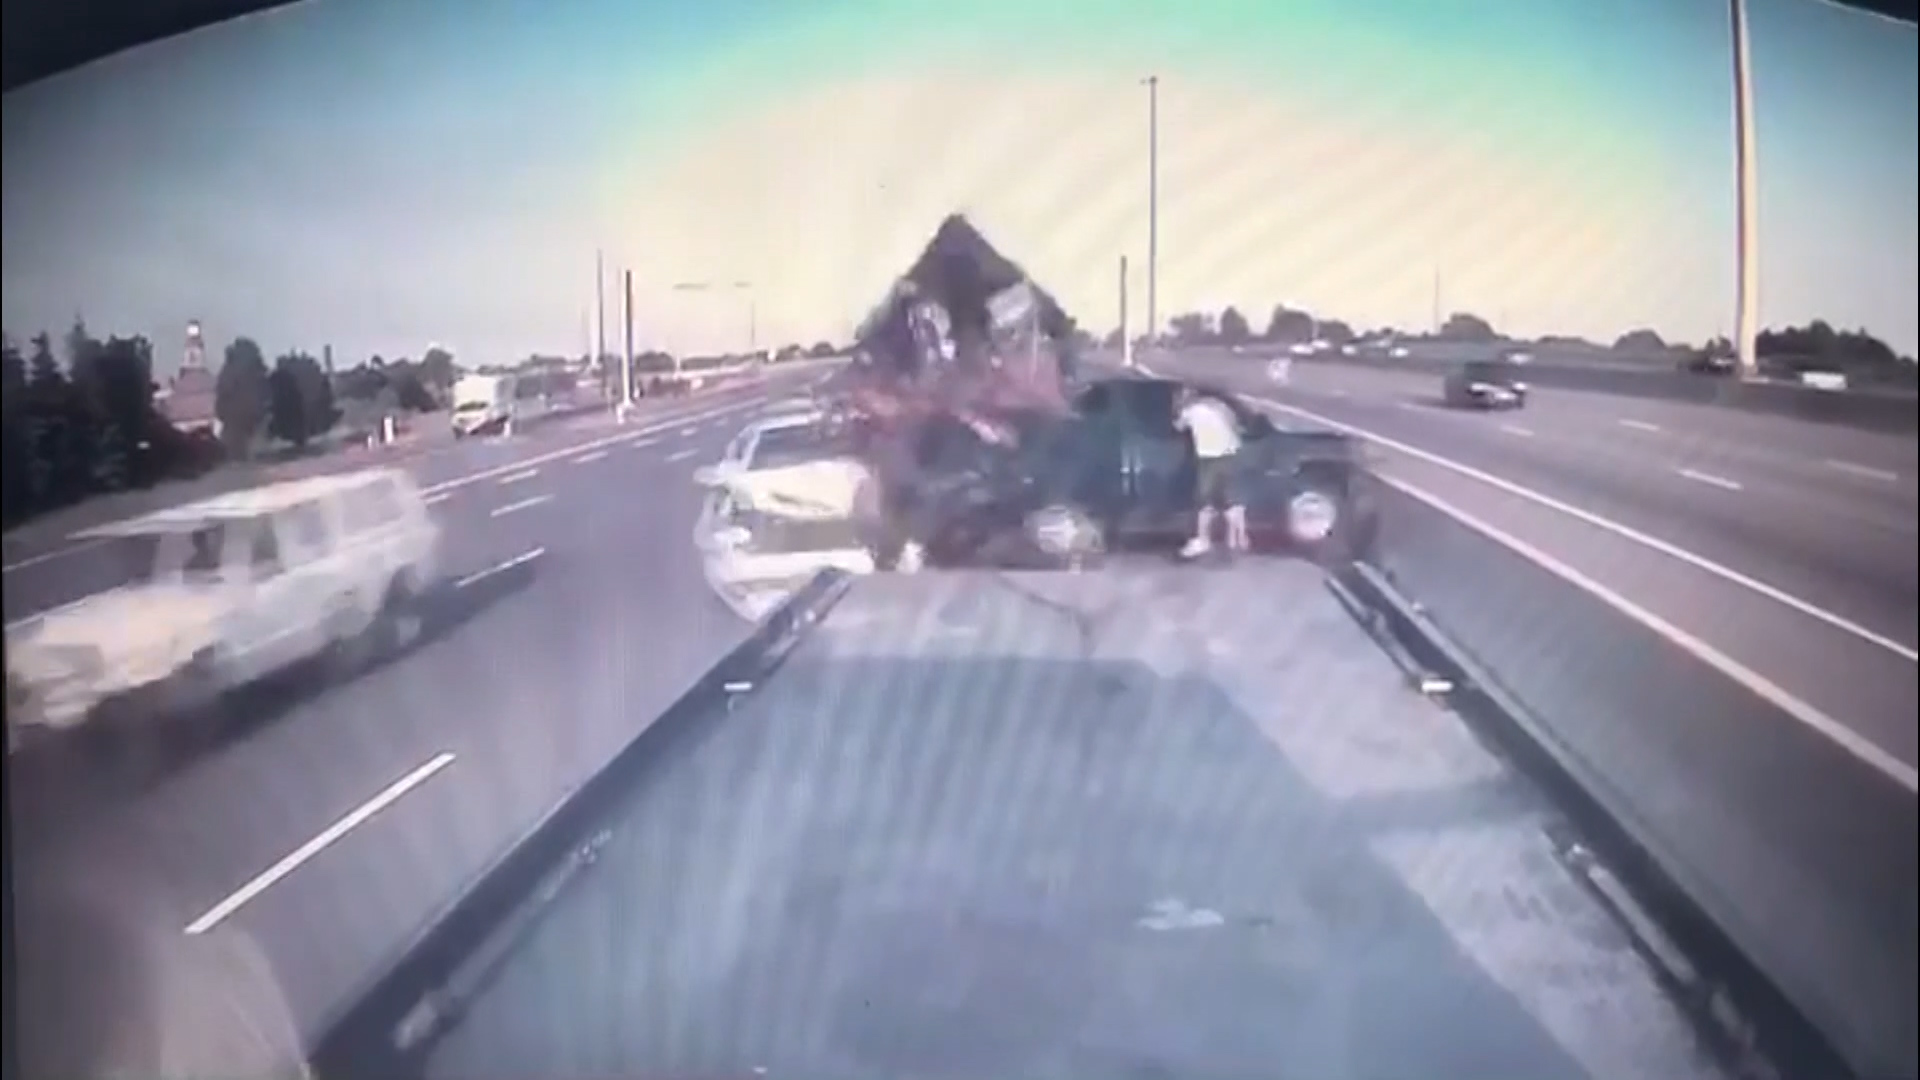 Dash cam video shows vehicle ploughing into truck initially involved in  minor collision